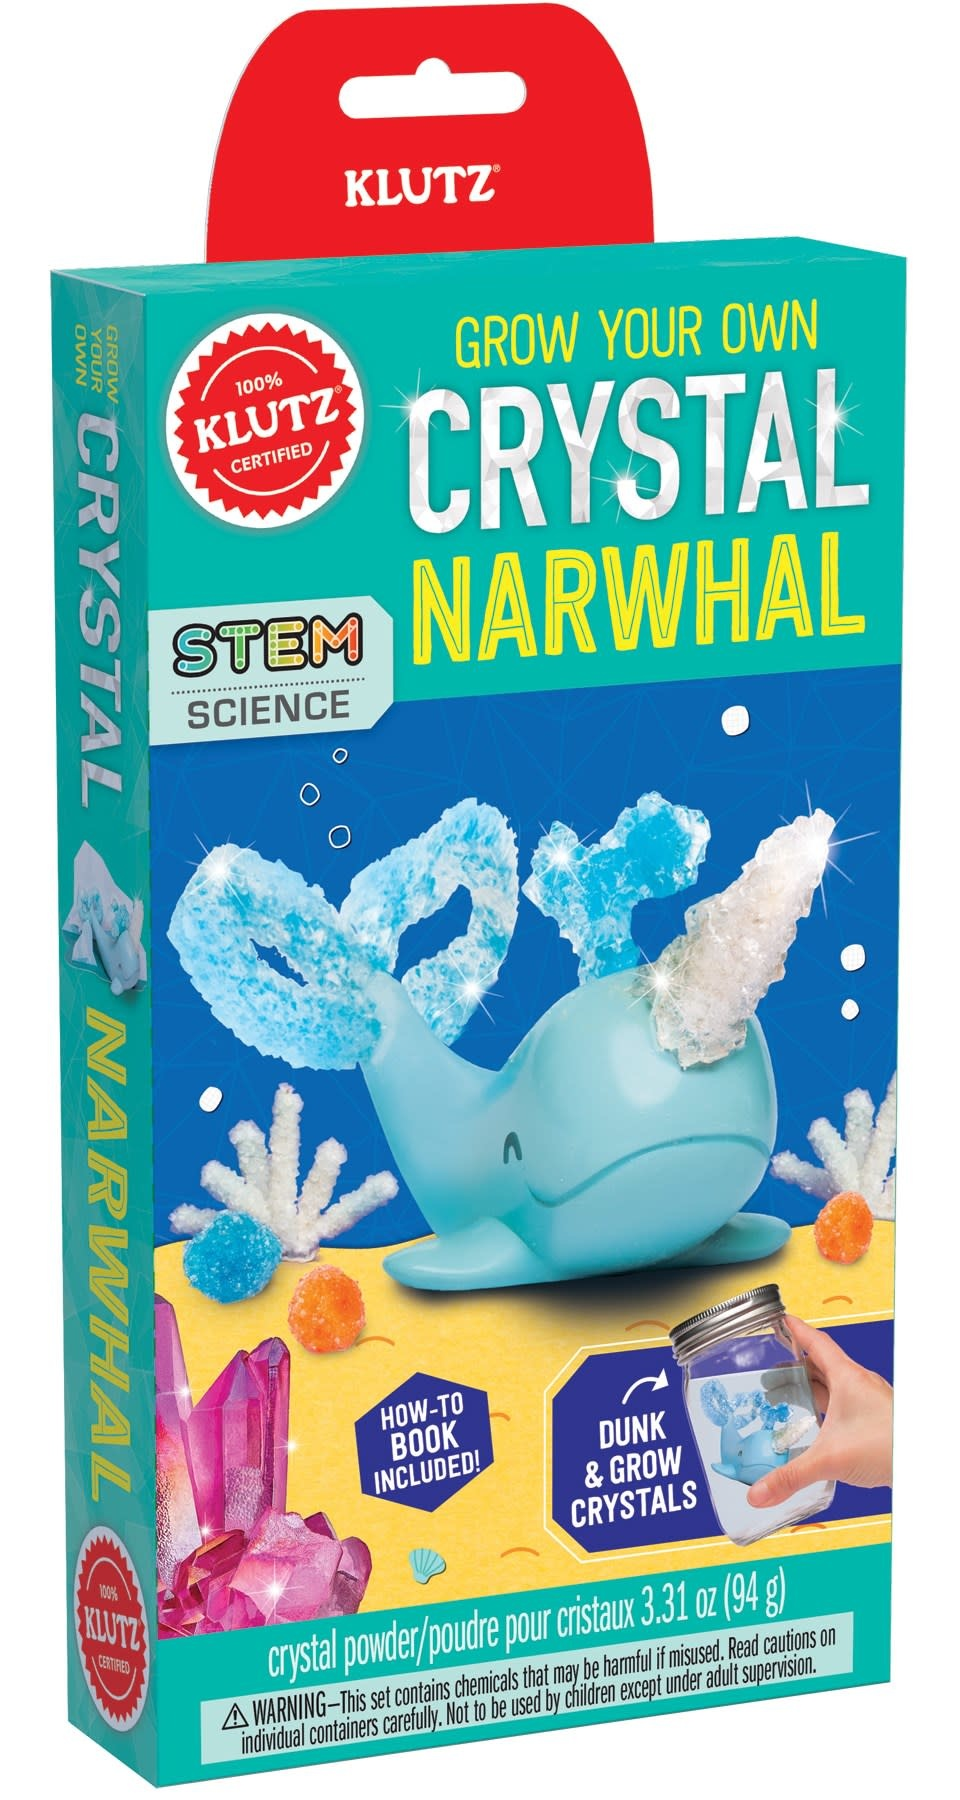 Klutz Klutz: Grow Your Own Crystal Narwhal